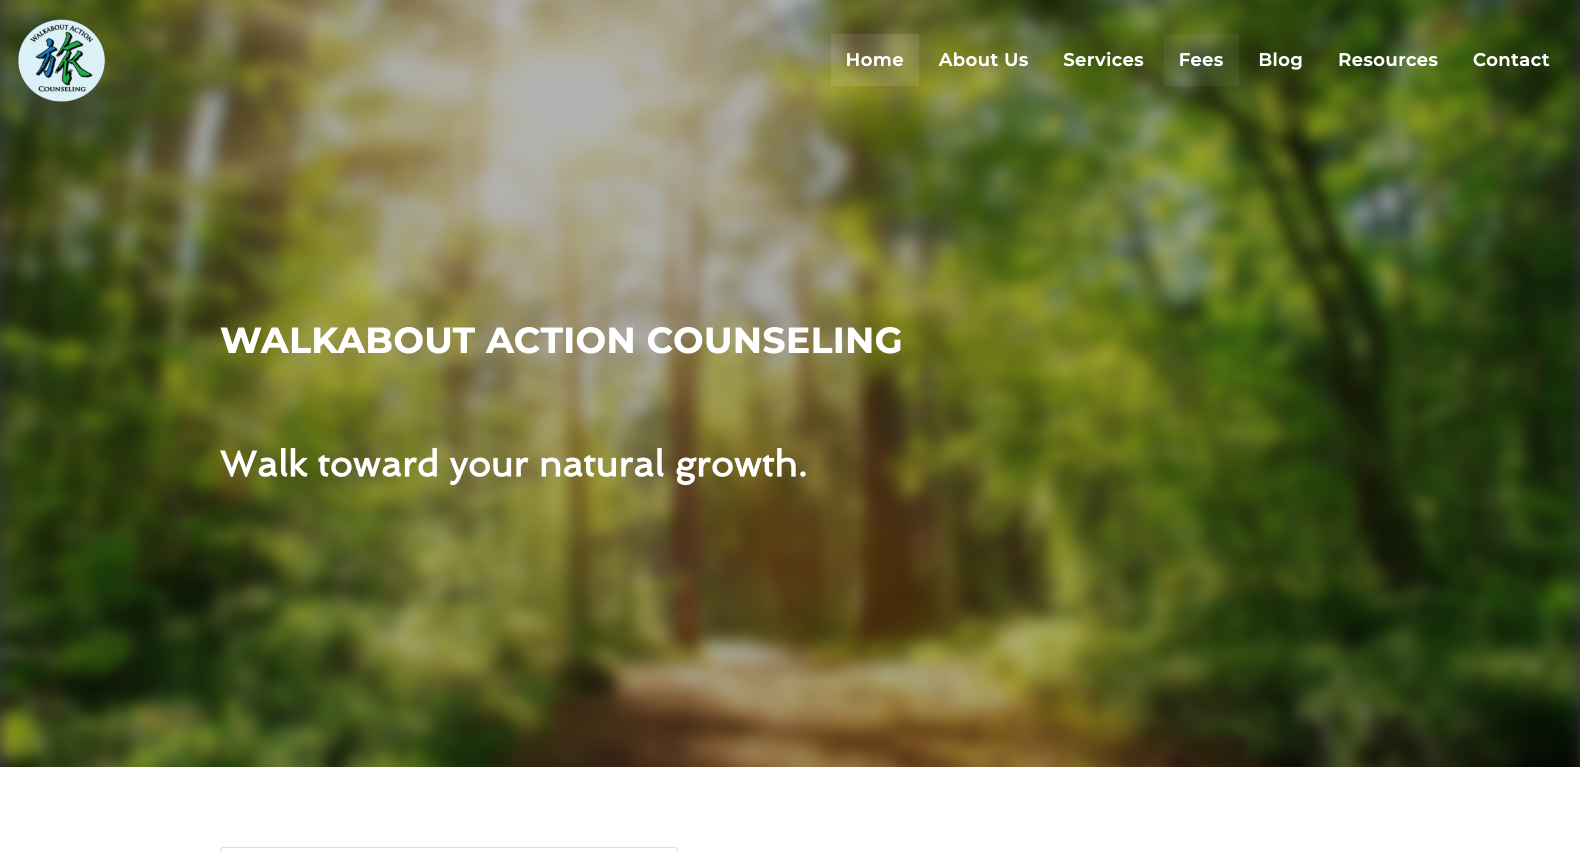 Walkabout Action Counseling